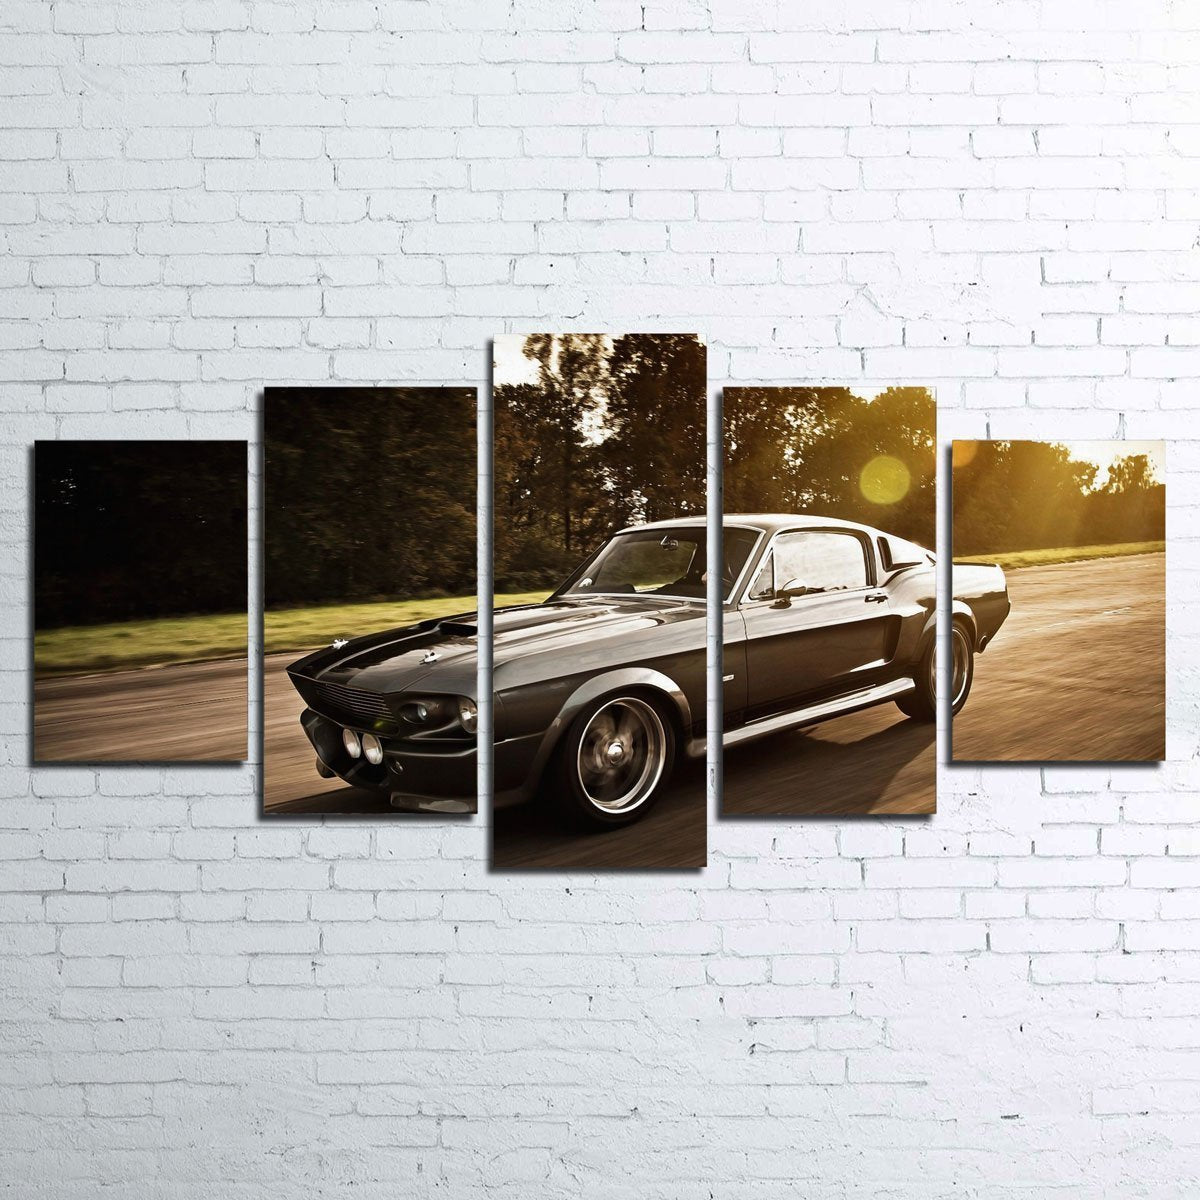 1967 Mustang Shelby GT500 Eleanor 5 Piece Canvas Set